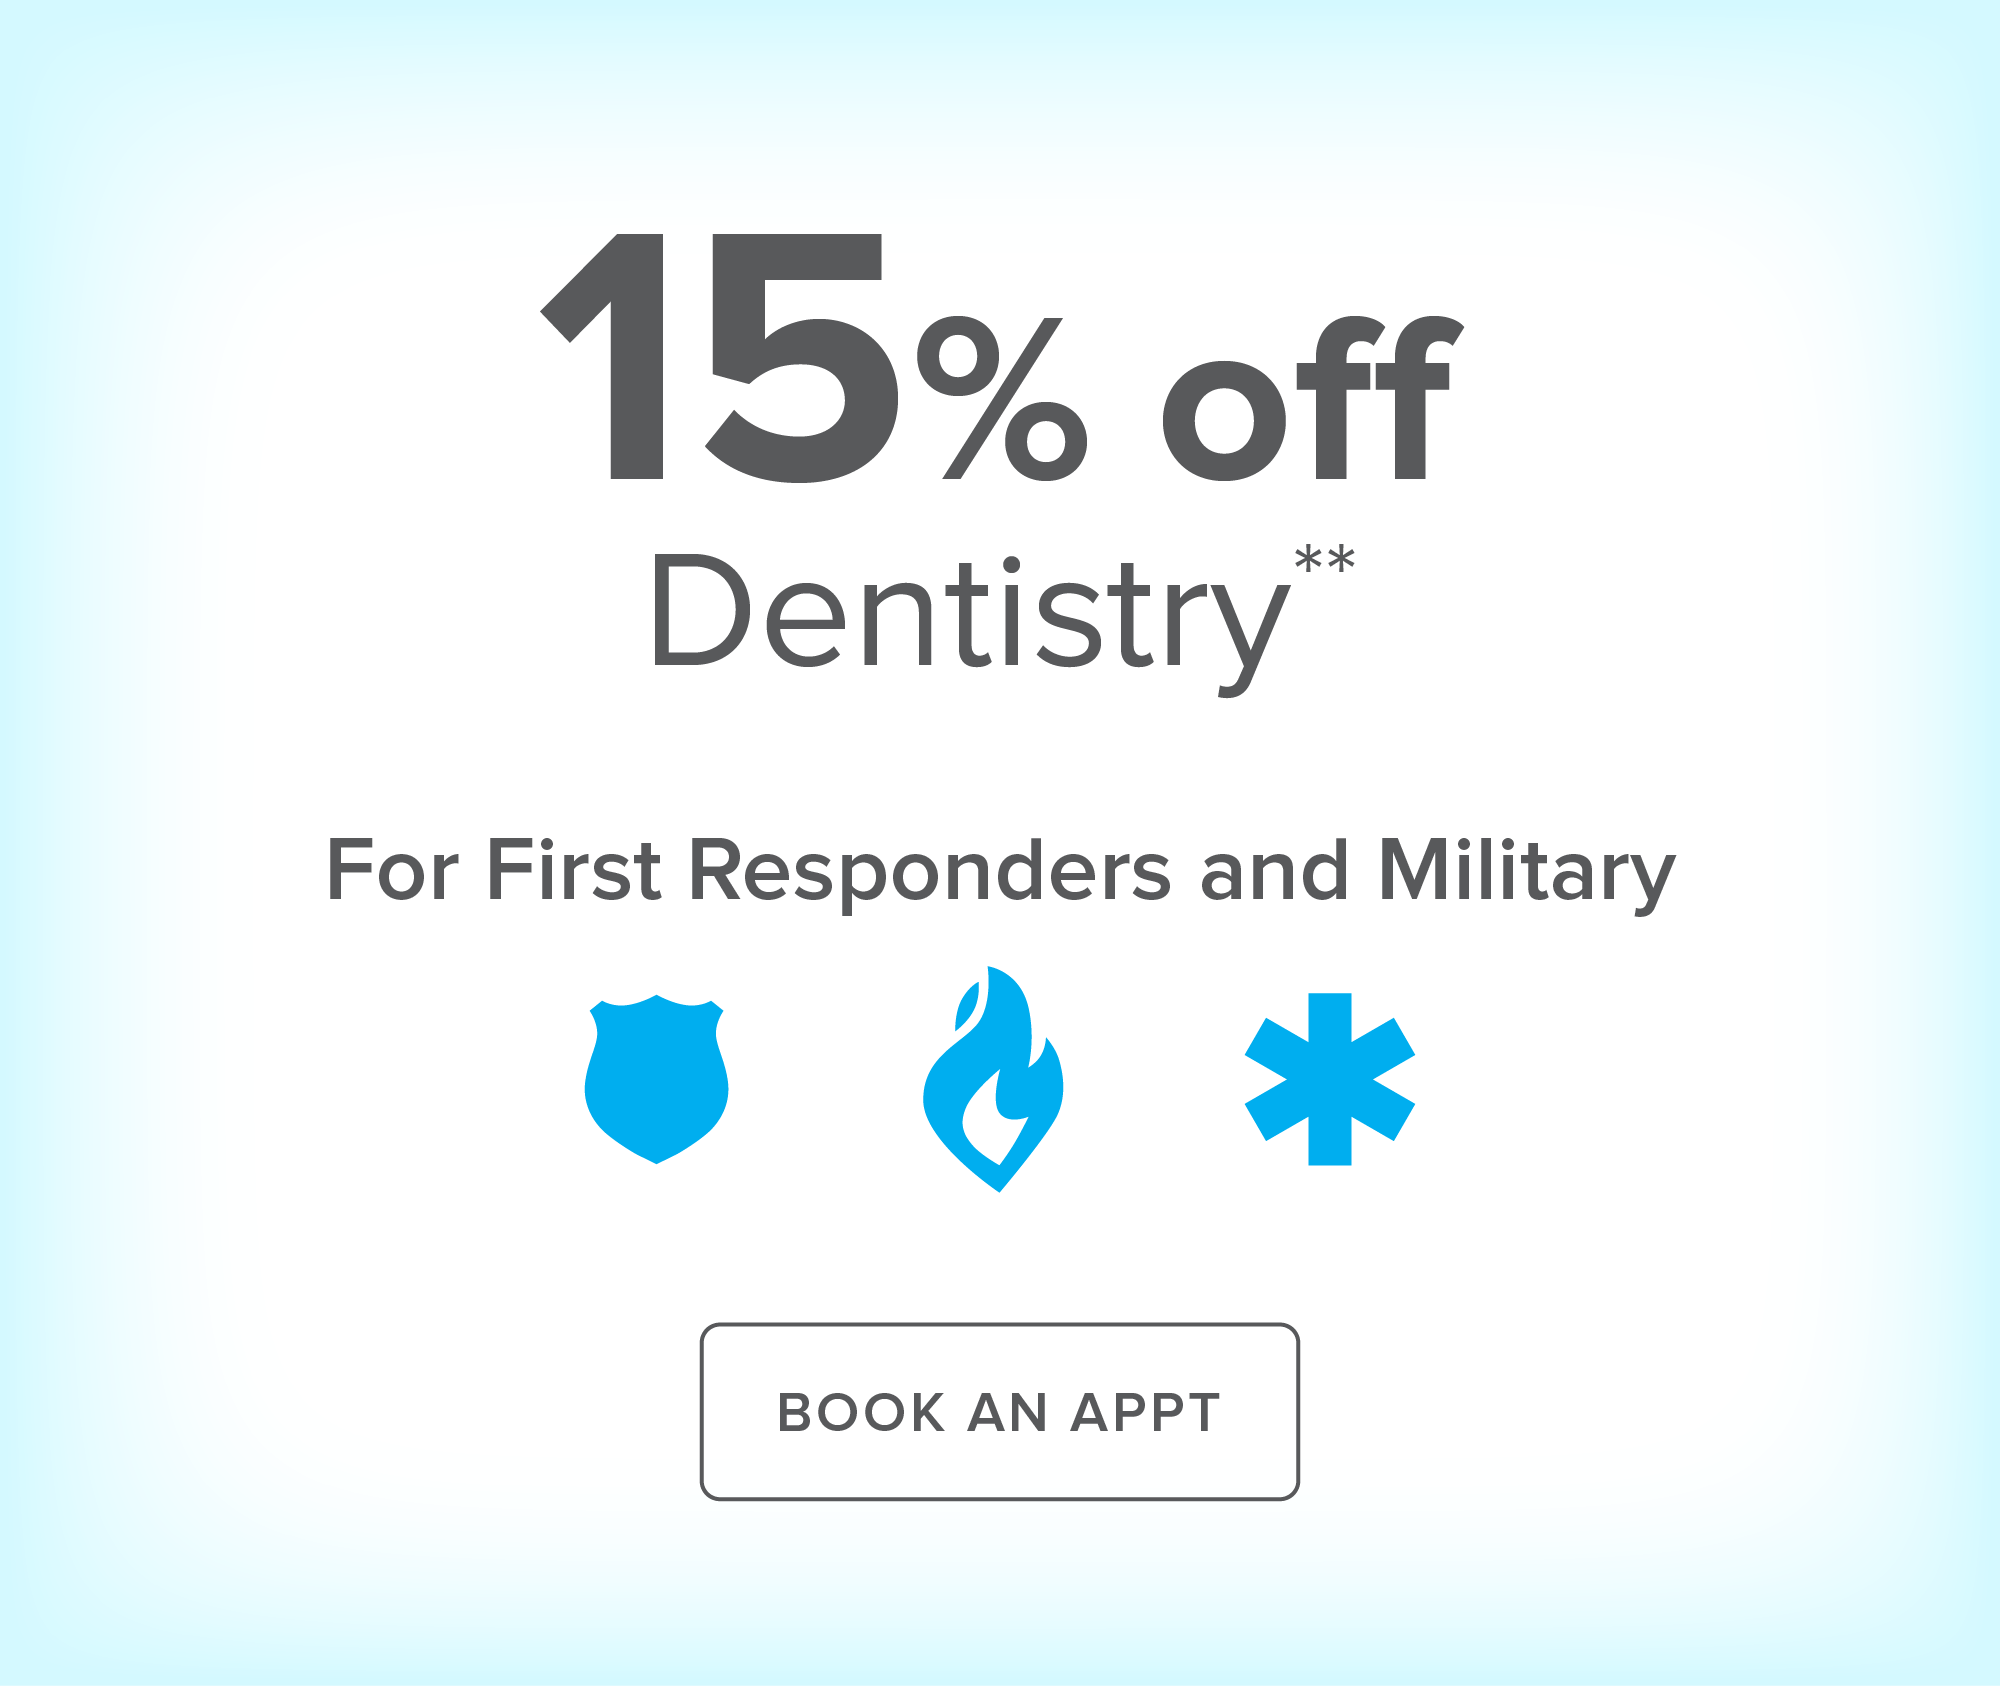 First Responders and Military - Waltham Modern Dentistry